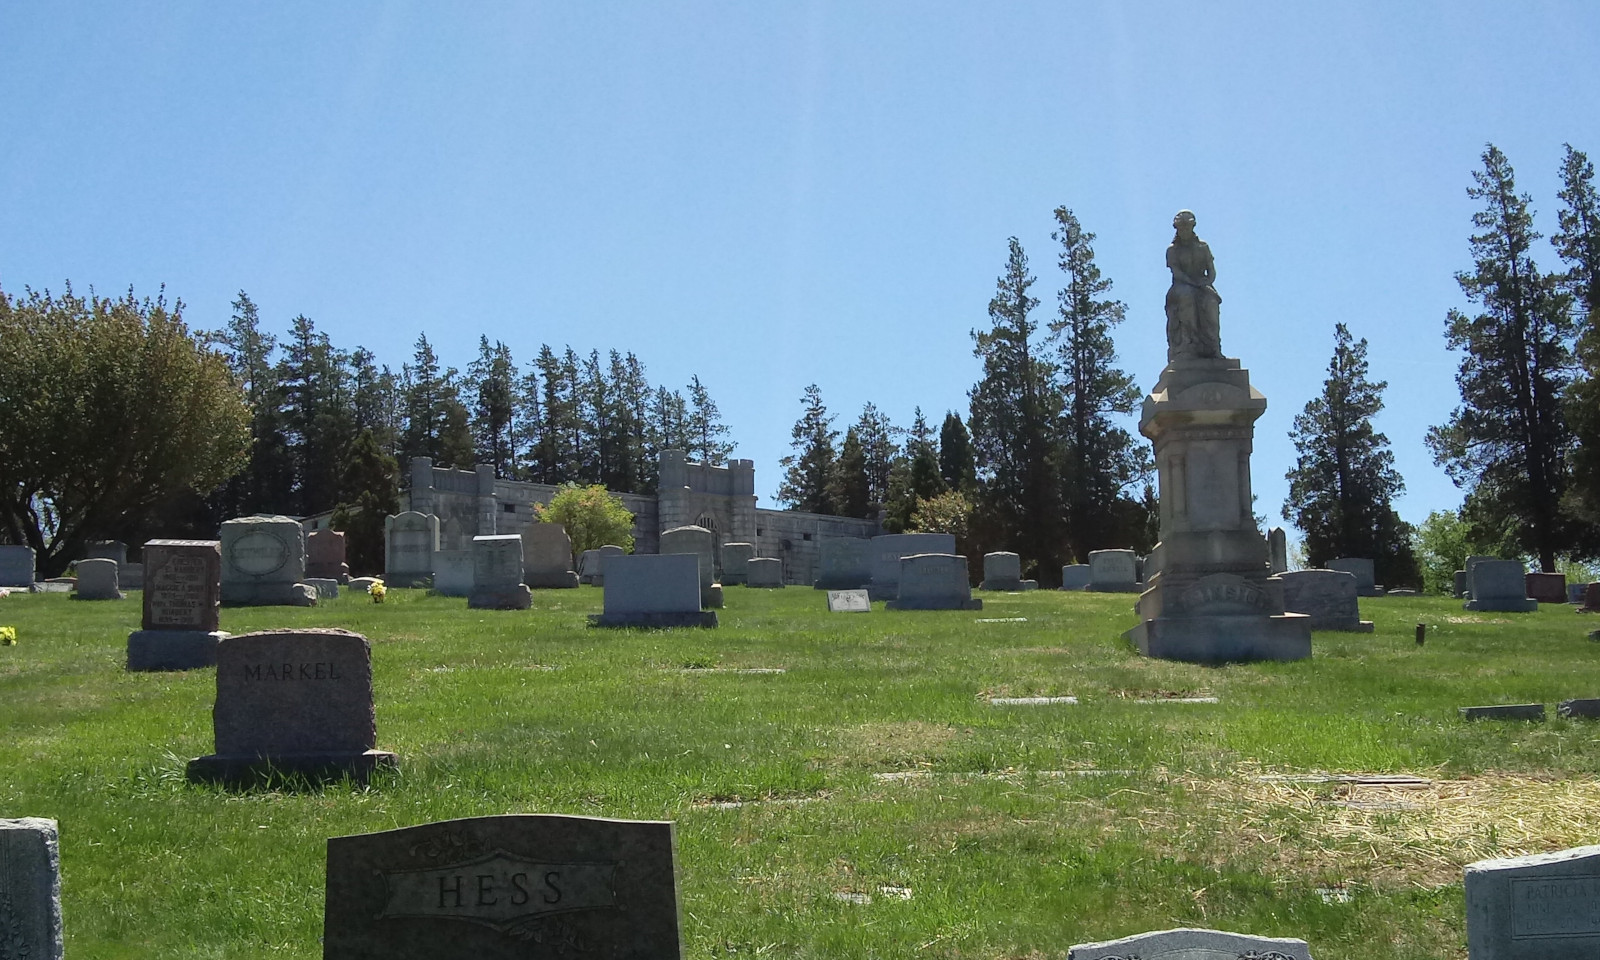 Midway up the hill at Mount Rose Cemetery